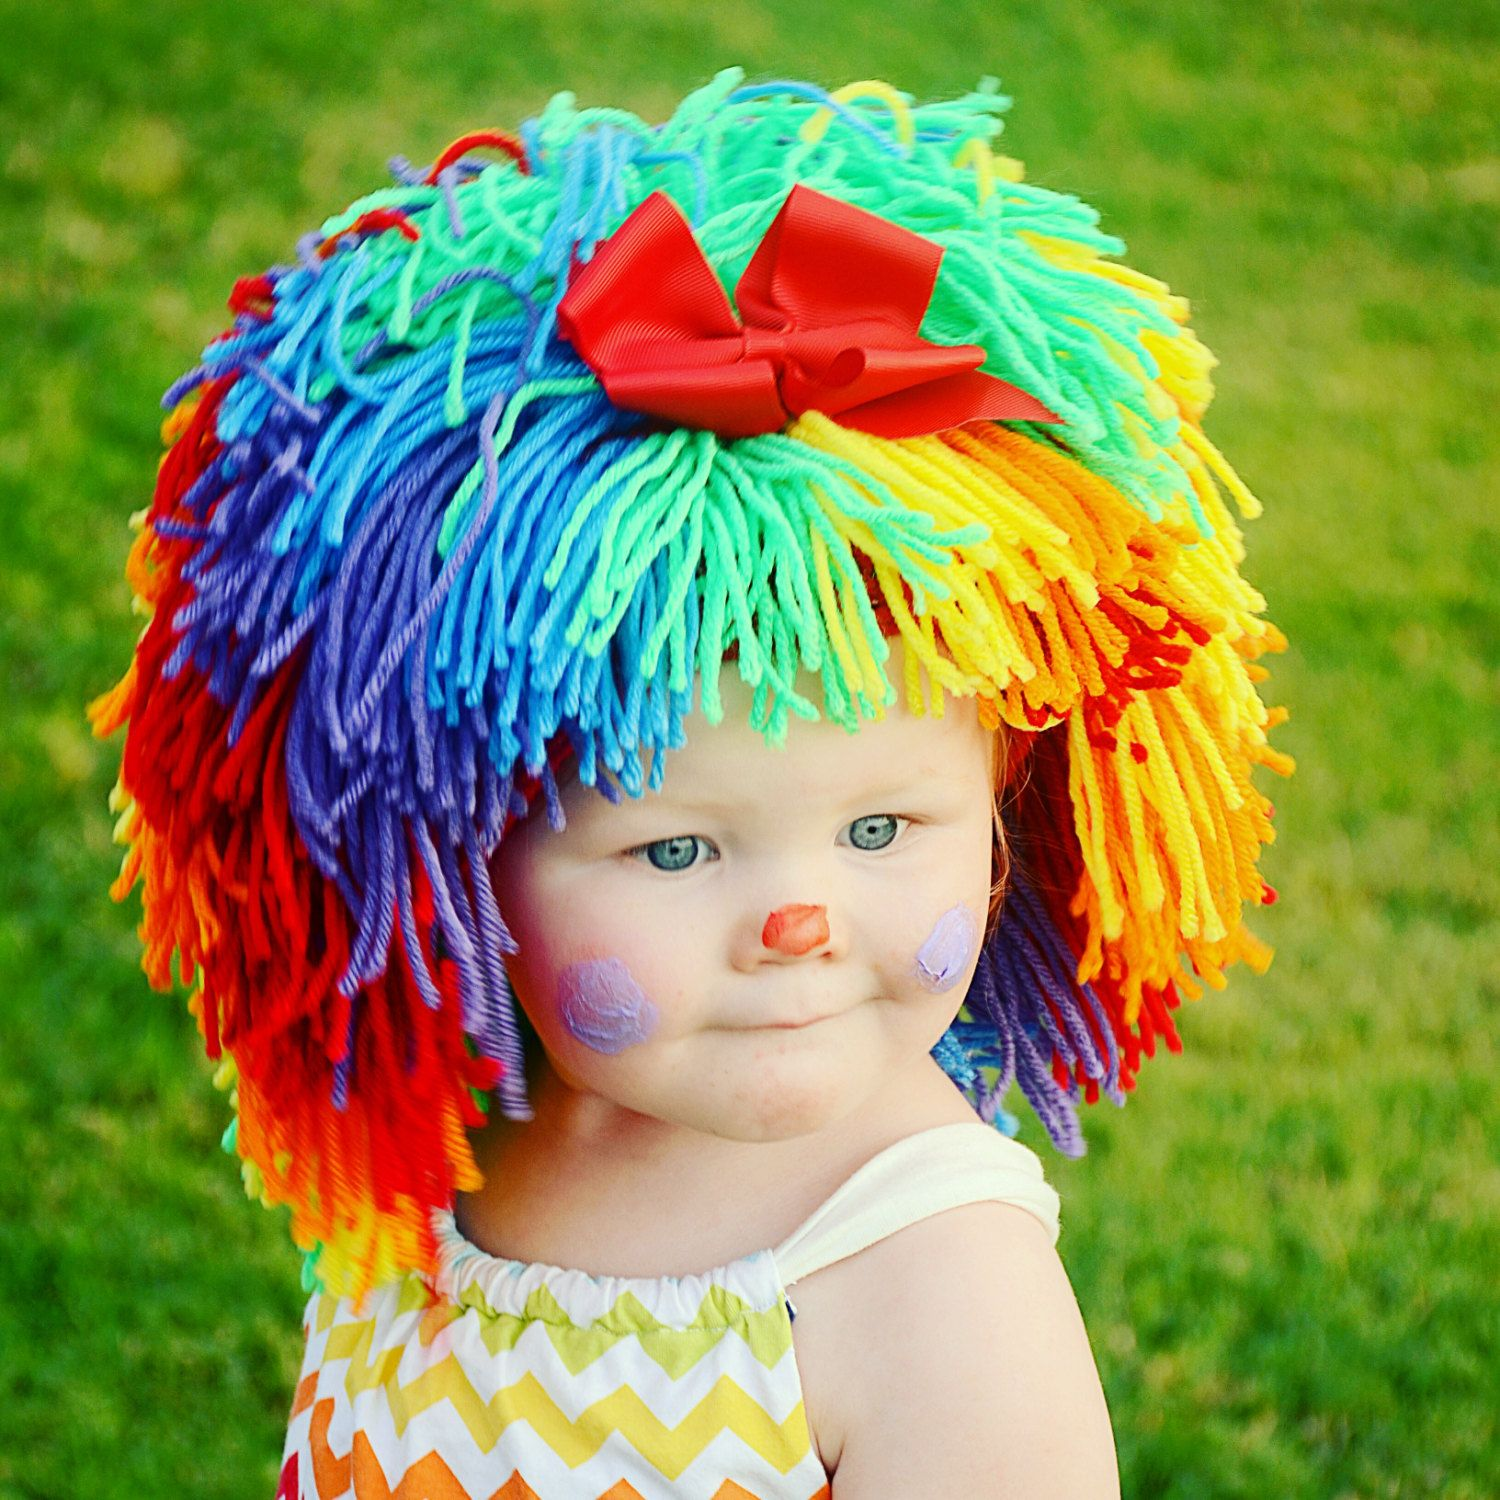 colorful clown wig halloween costume wonderful photo prop or